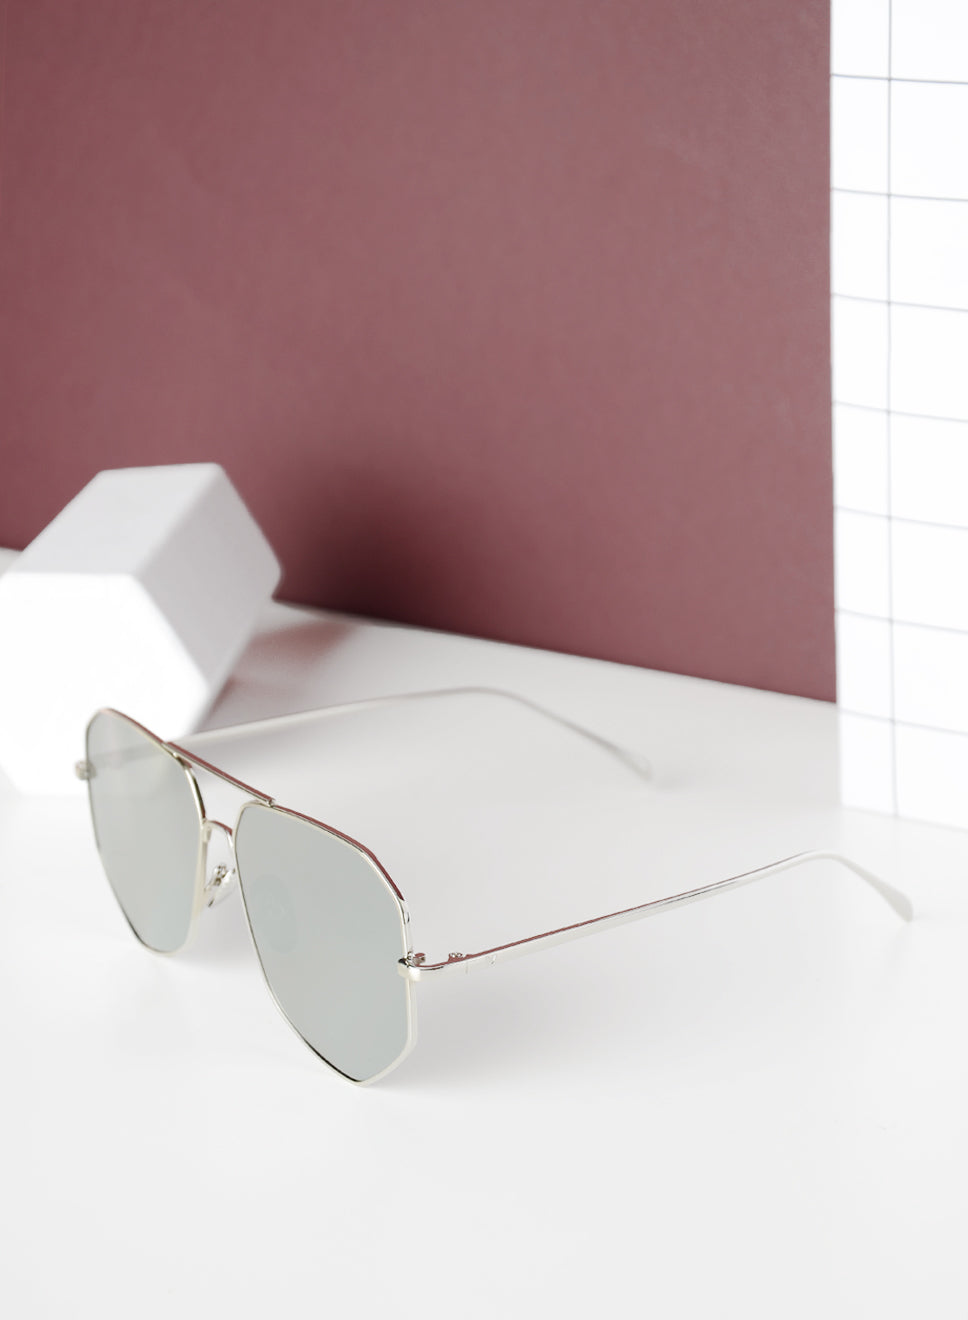 LEILA Wide Mirrored Sunnies (Silver) at $ 25.90 only sold at And Well Dressed Online Fashion Store Singapore